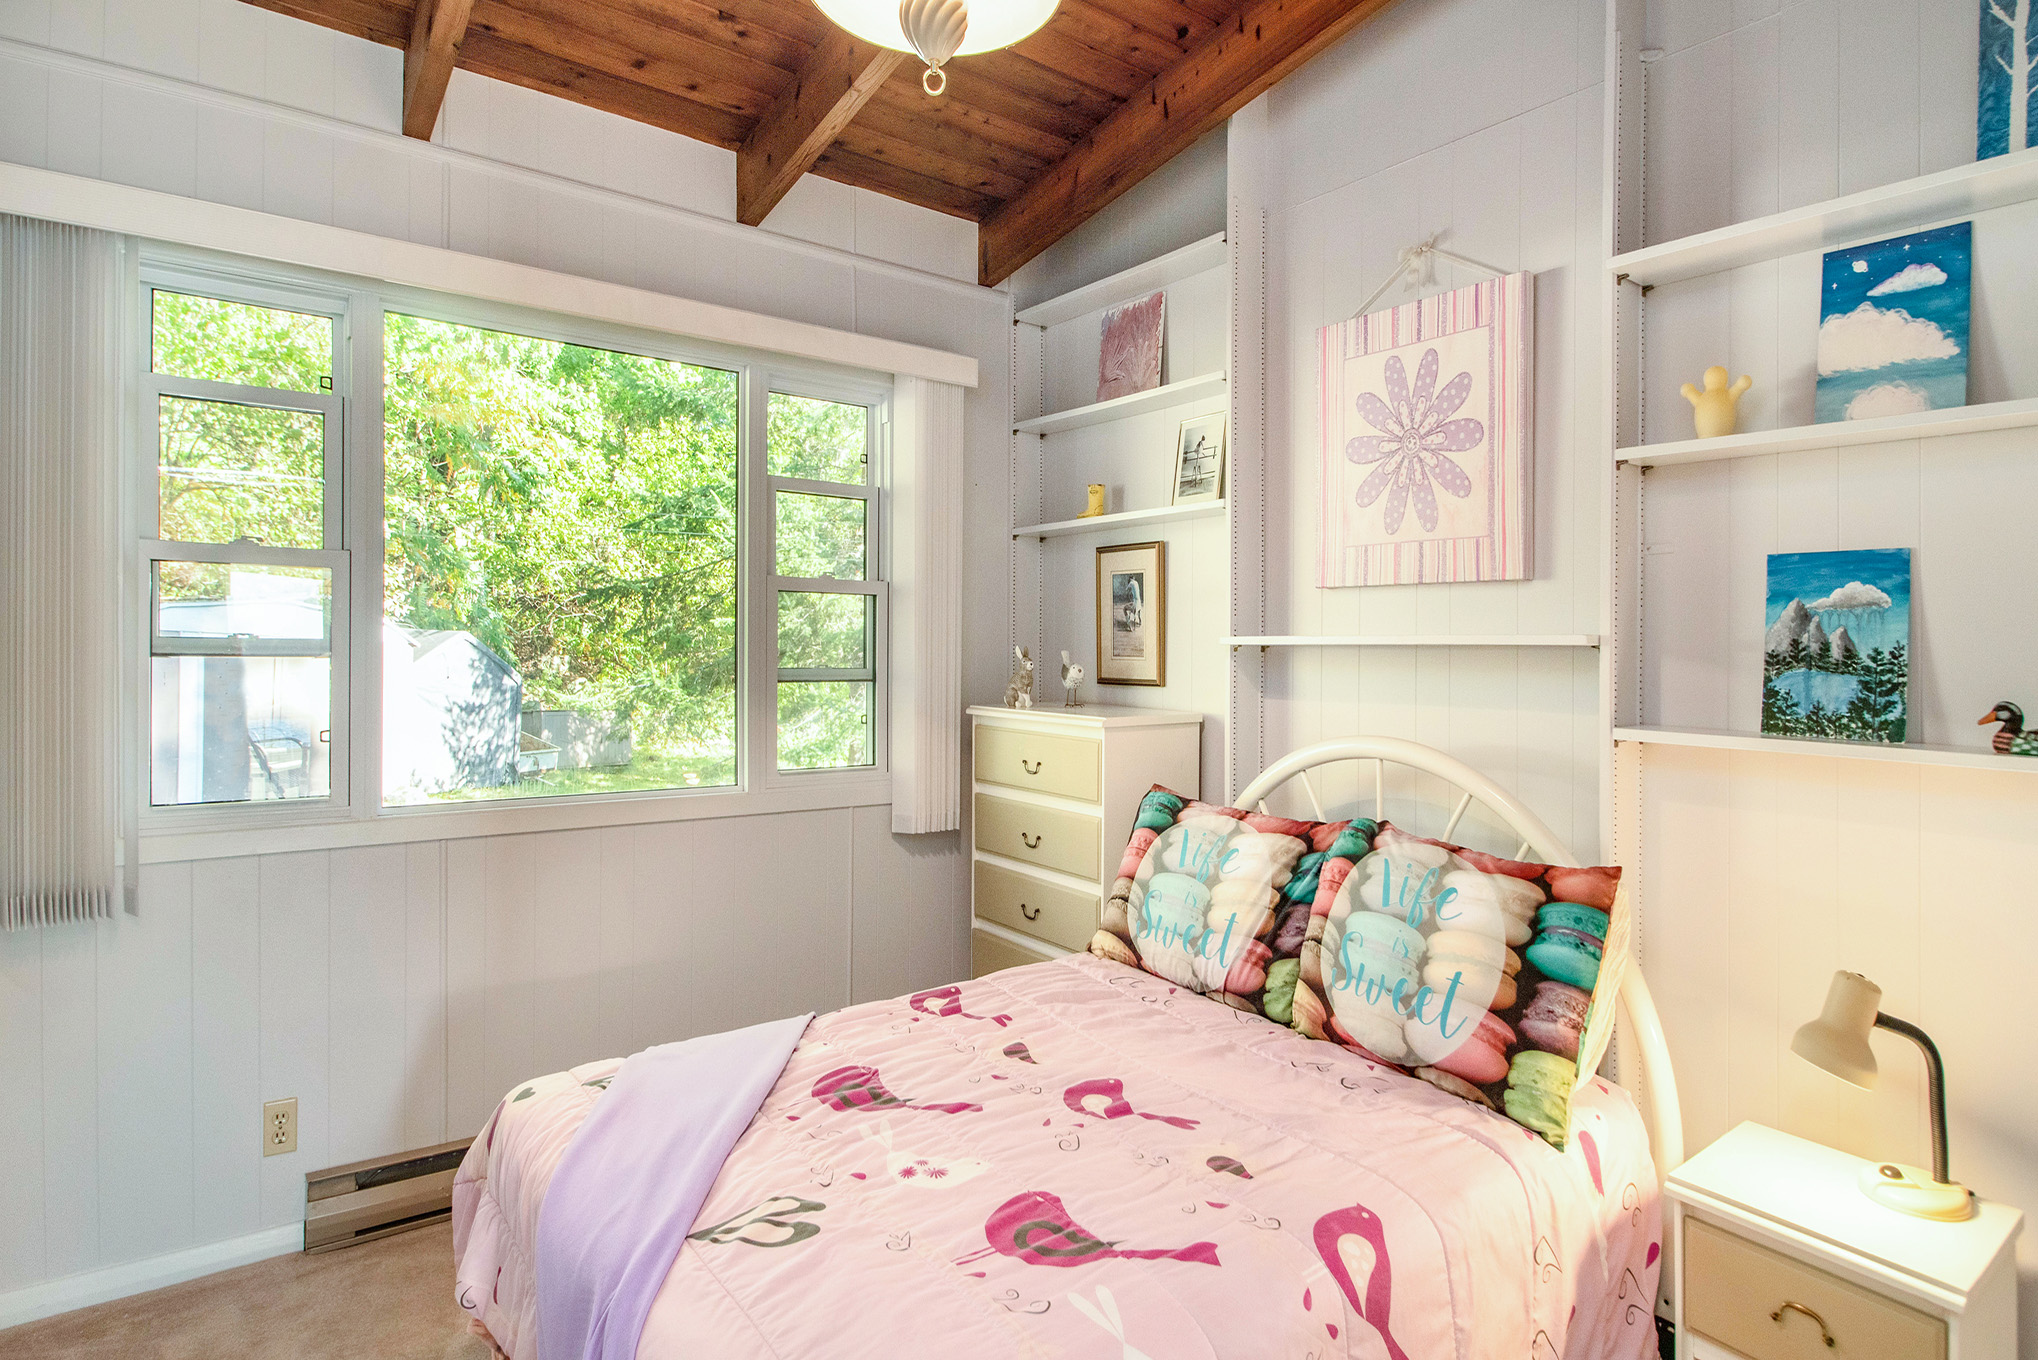 Great space in this cozy bedroom number 4